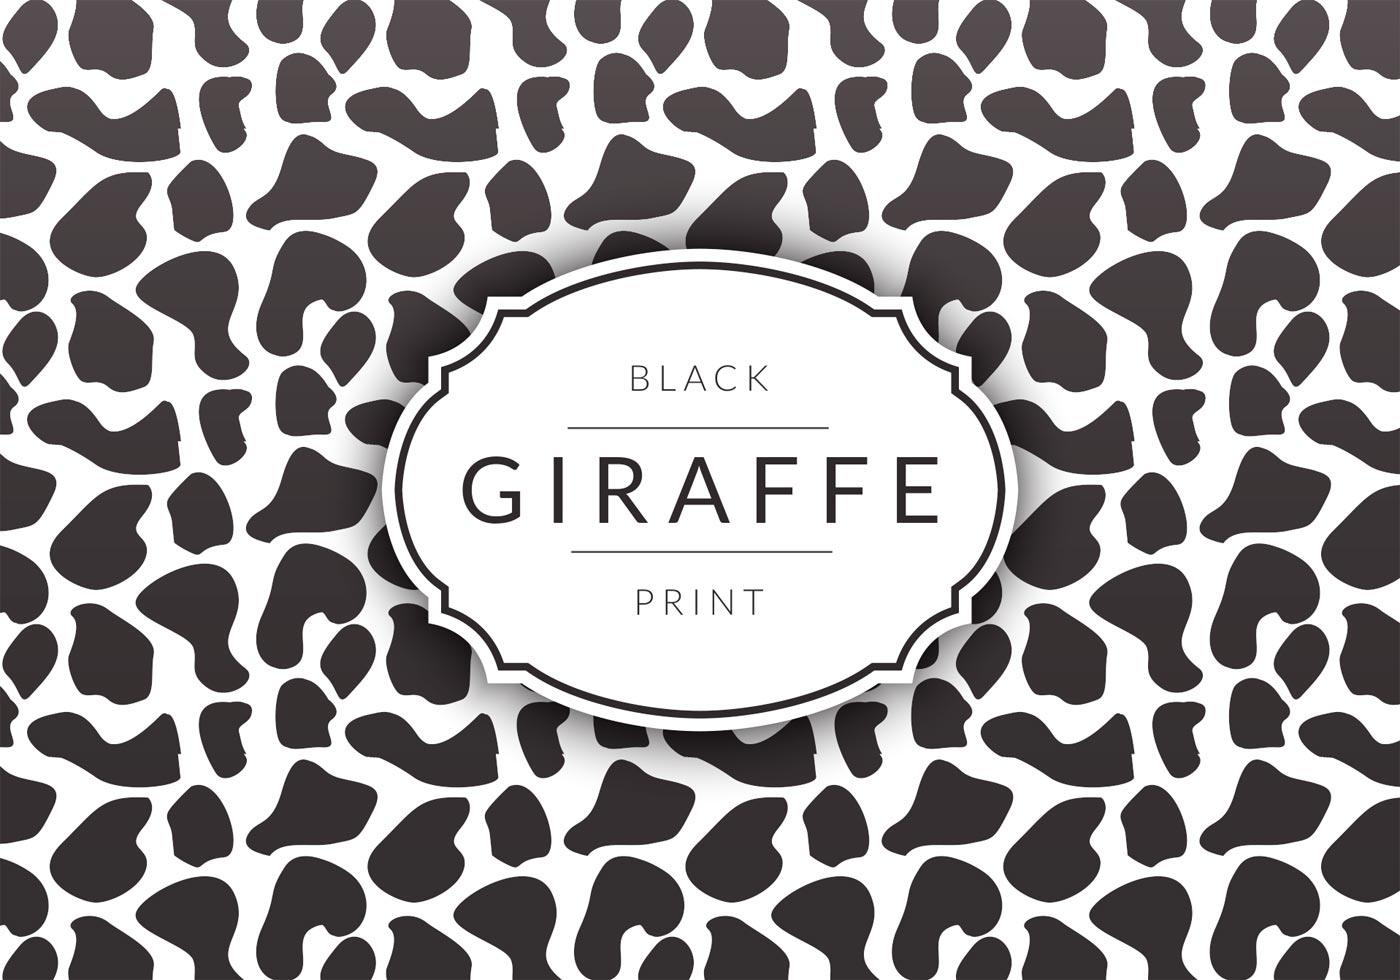 Black Giraffe Background